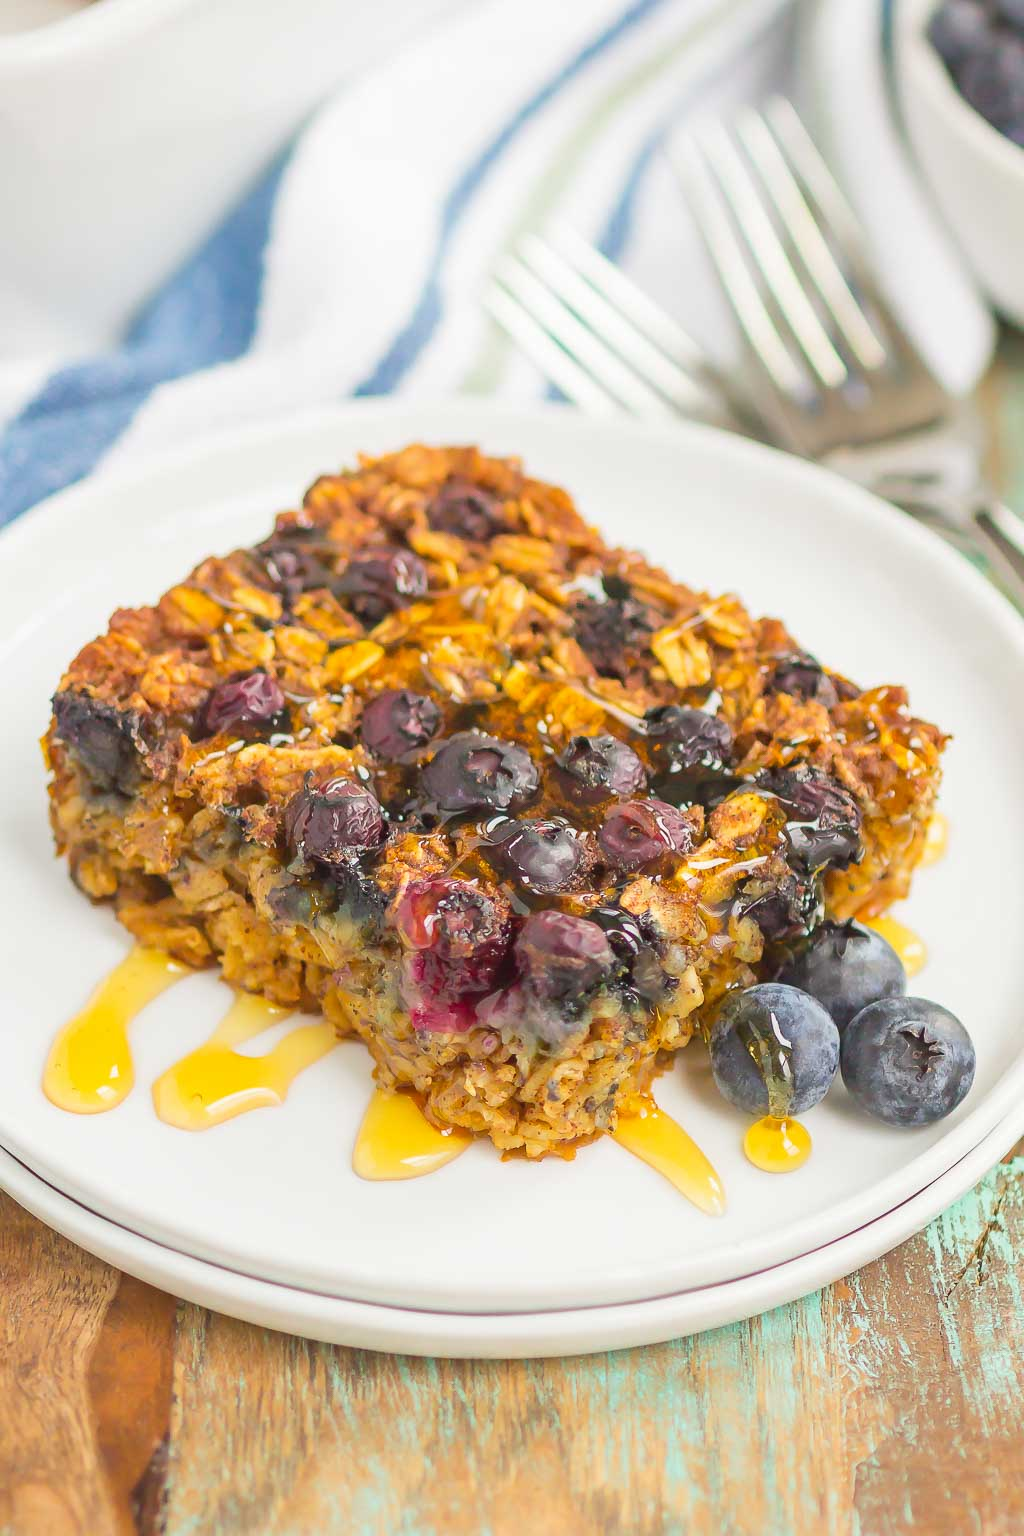 Blueberry Baked Oatmeal is an easy, make-ahead dish that's perfect for busy mornings. Tangy blueberries and hearty oats are sweetened with just the right amount of cozy spices. Serve this baked oatmeal with a drizzle of honey or maple syrup for a hearty breakfast!